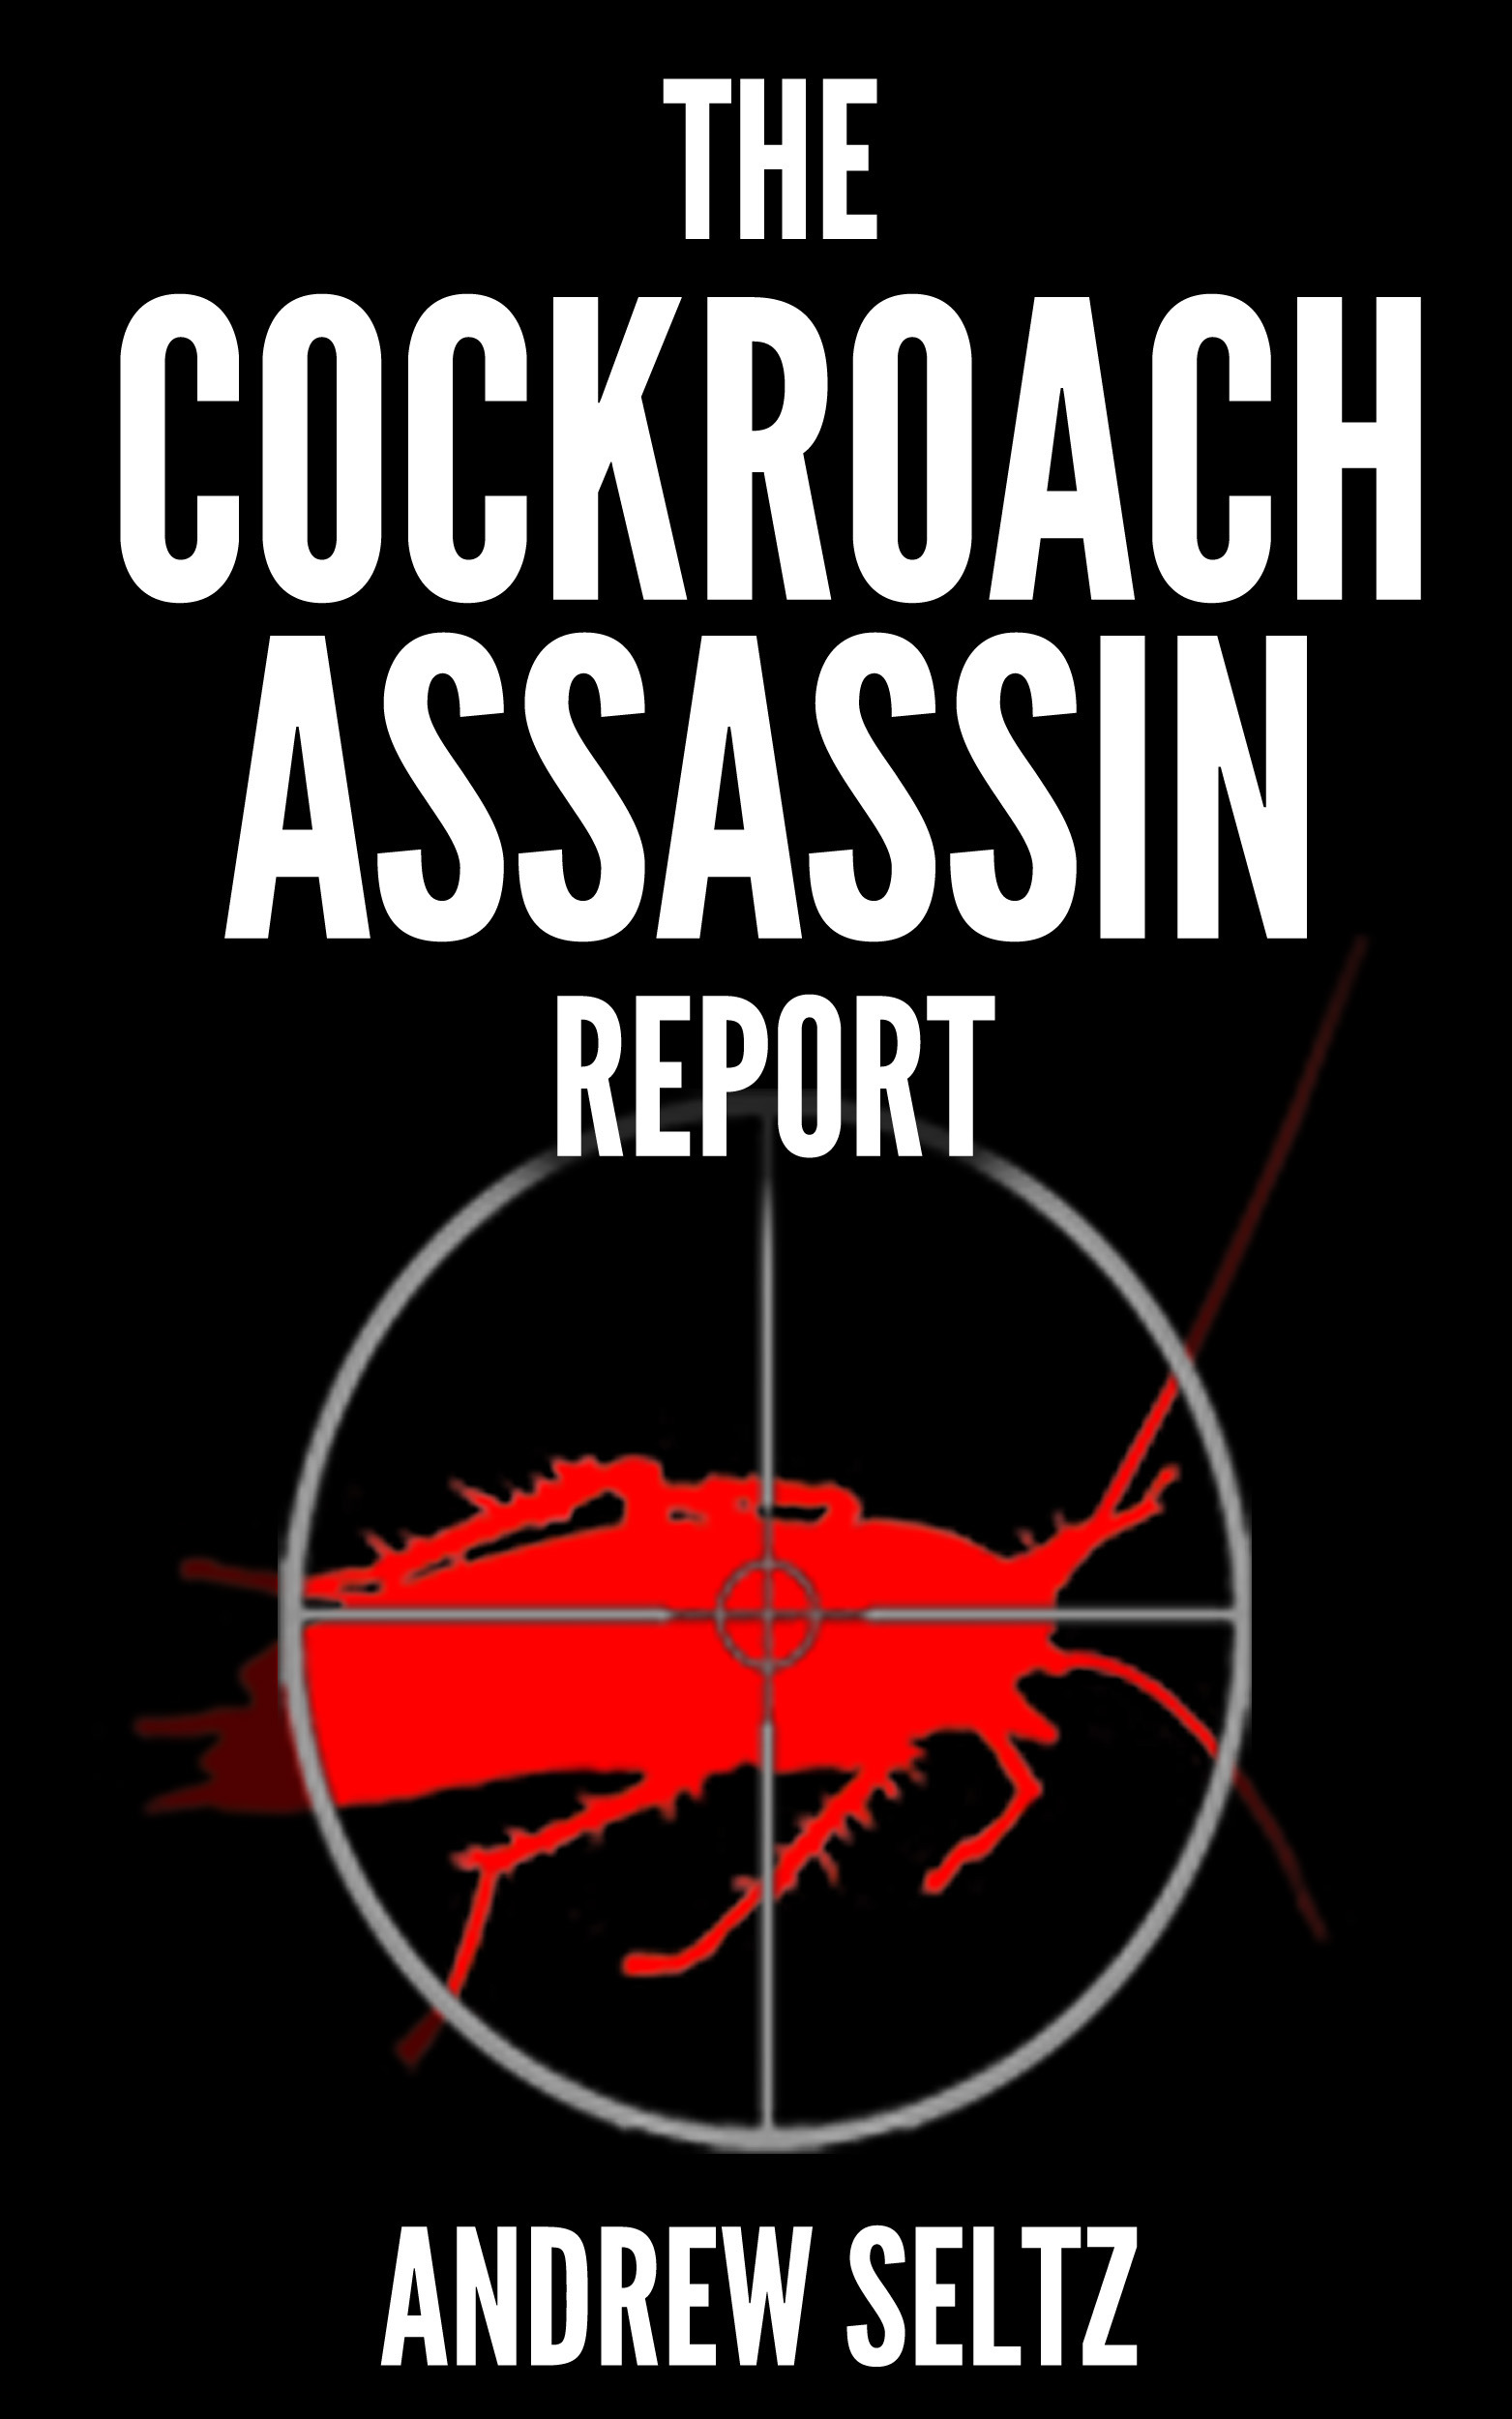 The Cockroach Assassin Report: Killing Roaches without Killing Yourself